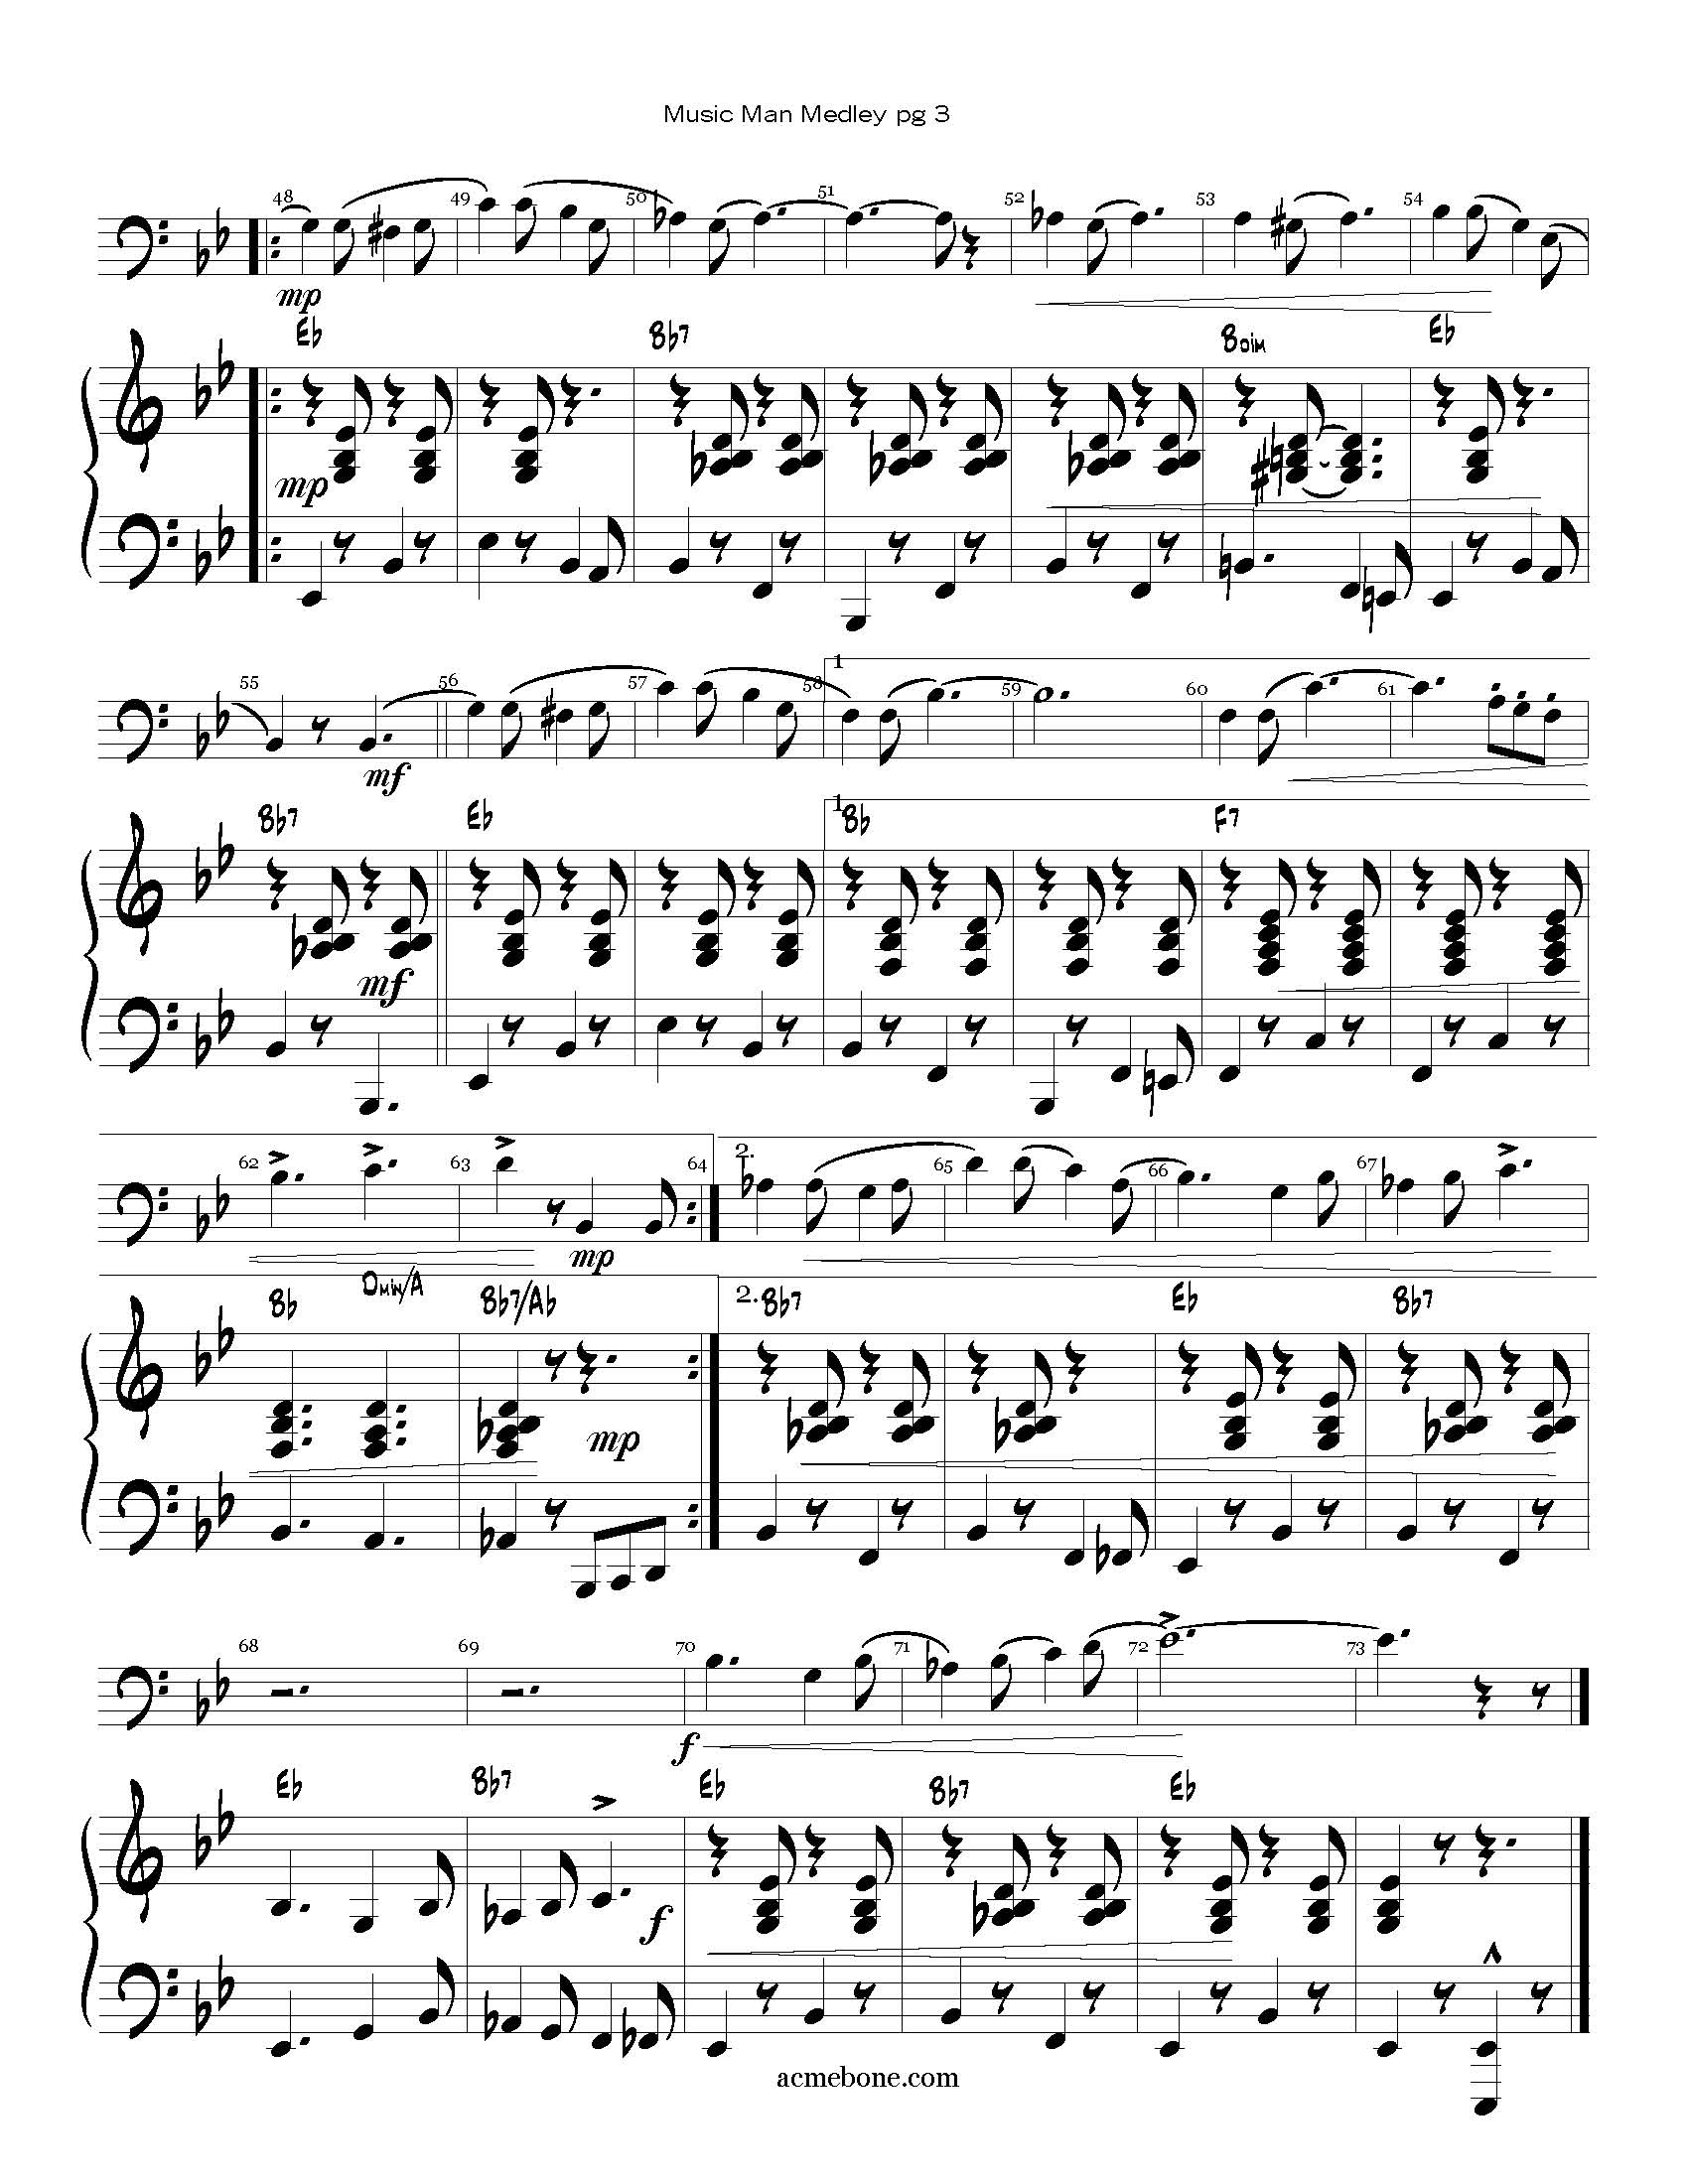 Music Man Medley_complete_Page_5.jpg